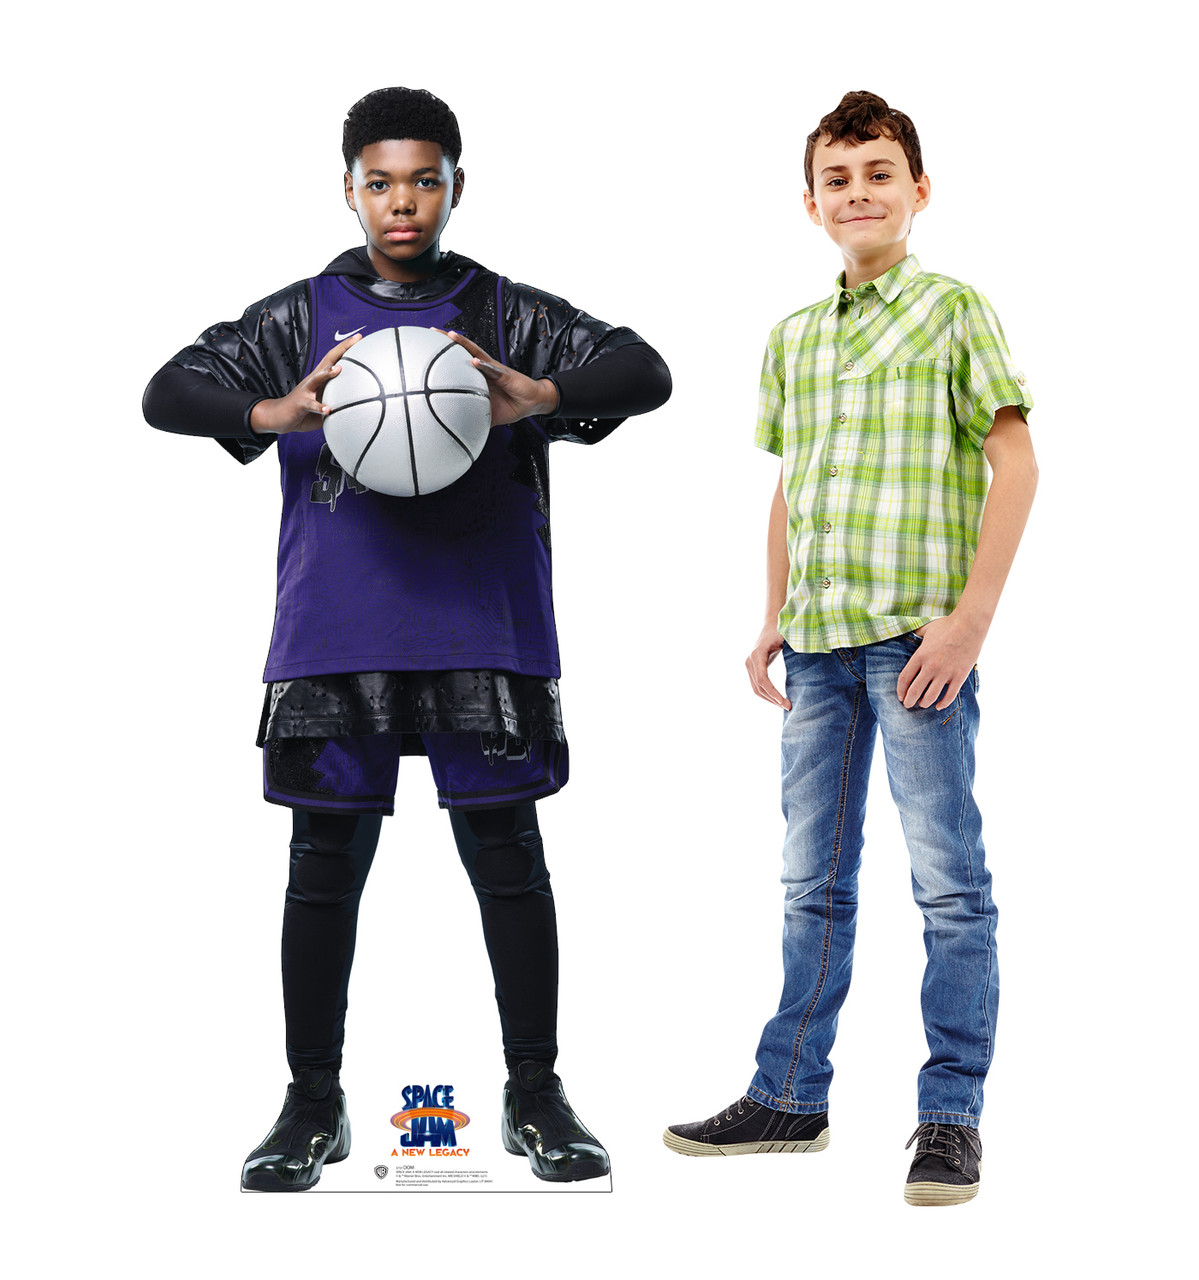 Life-size cardboard standee of Dom from Space Jam A New Legacy with model.